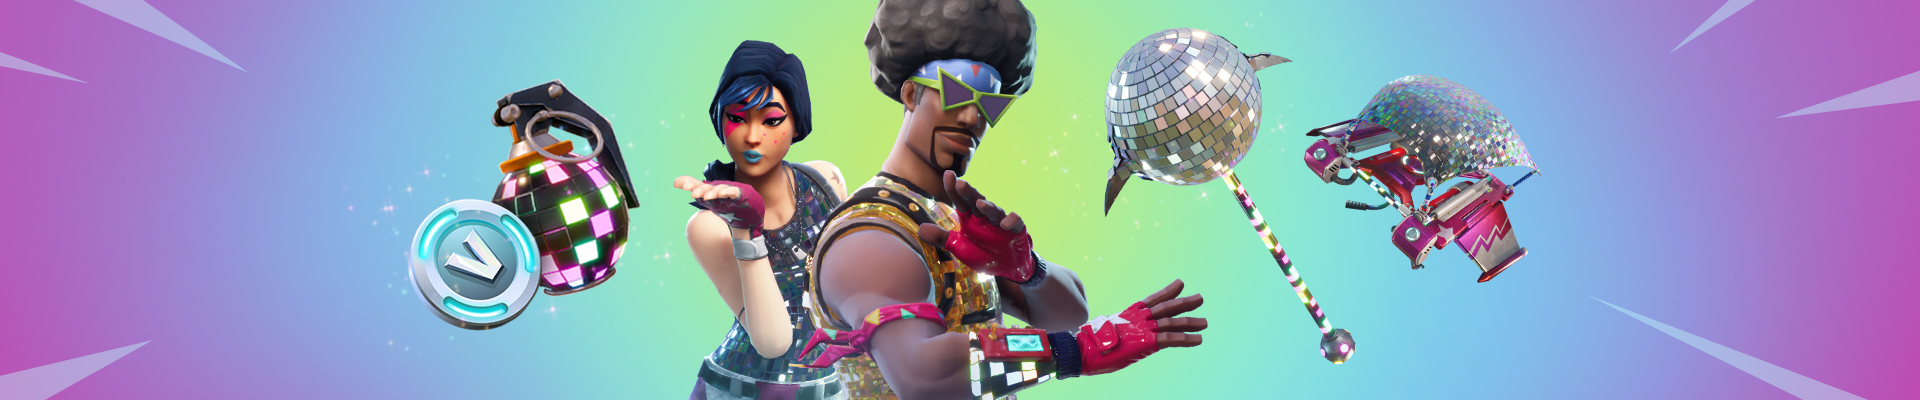 Fortnite #boogiedown Contest Rules